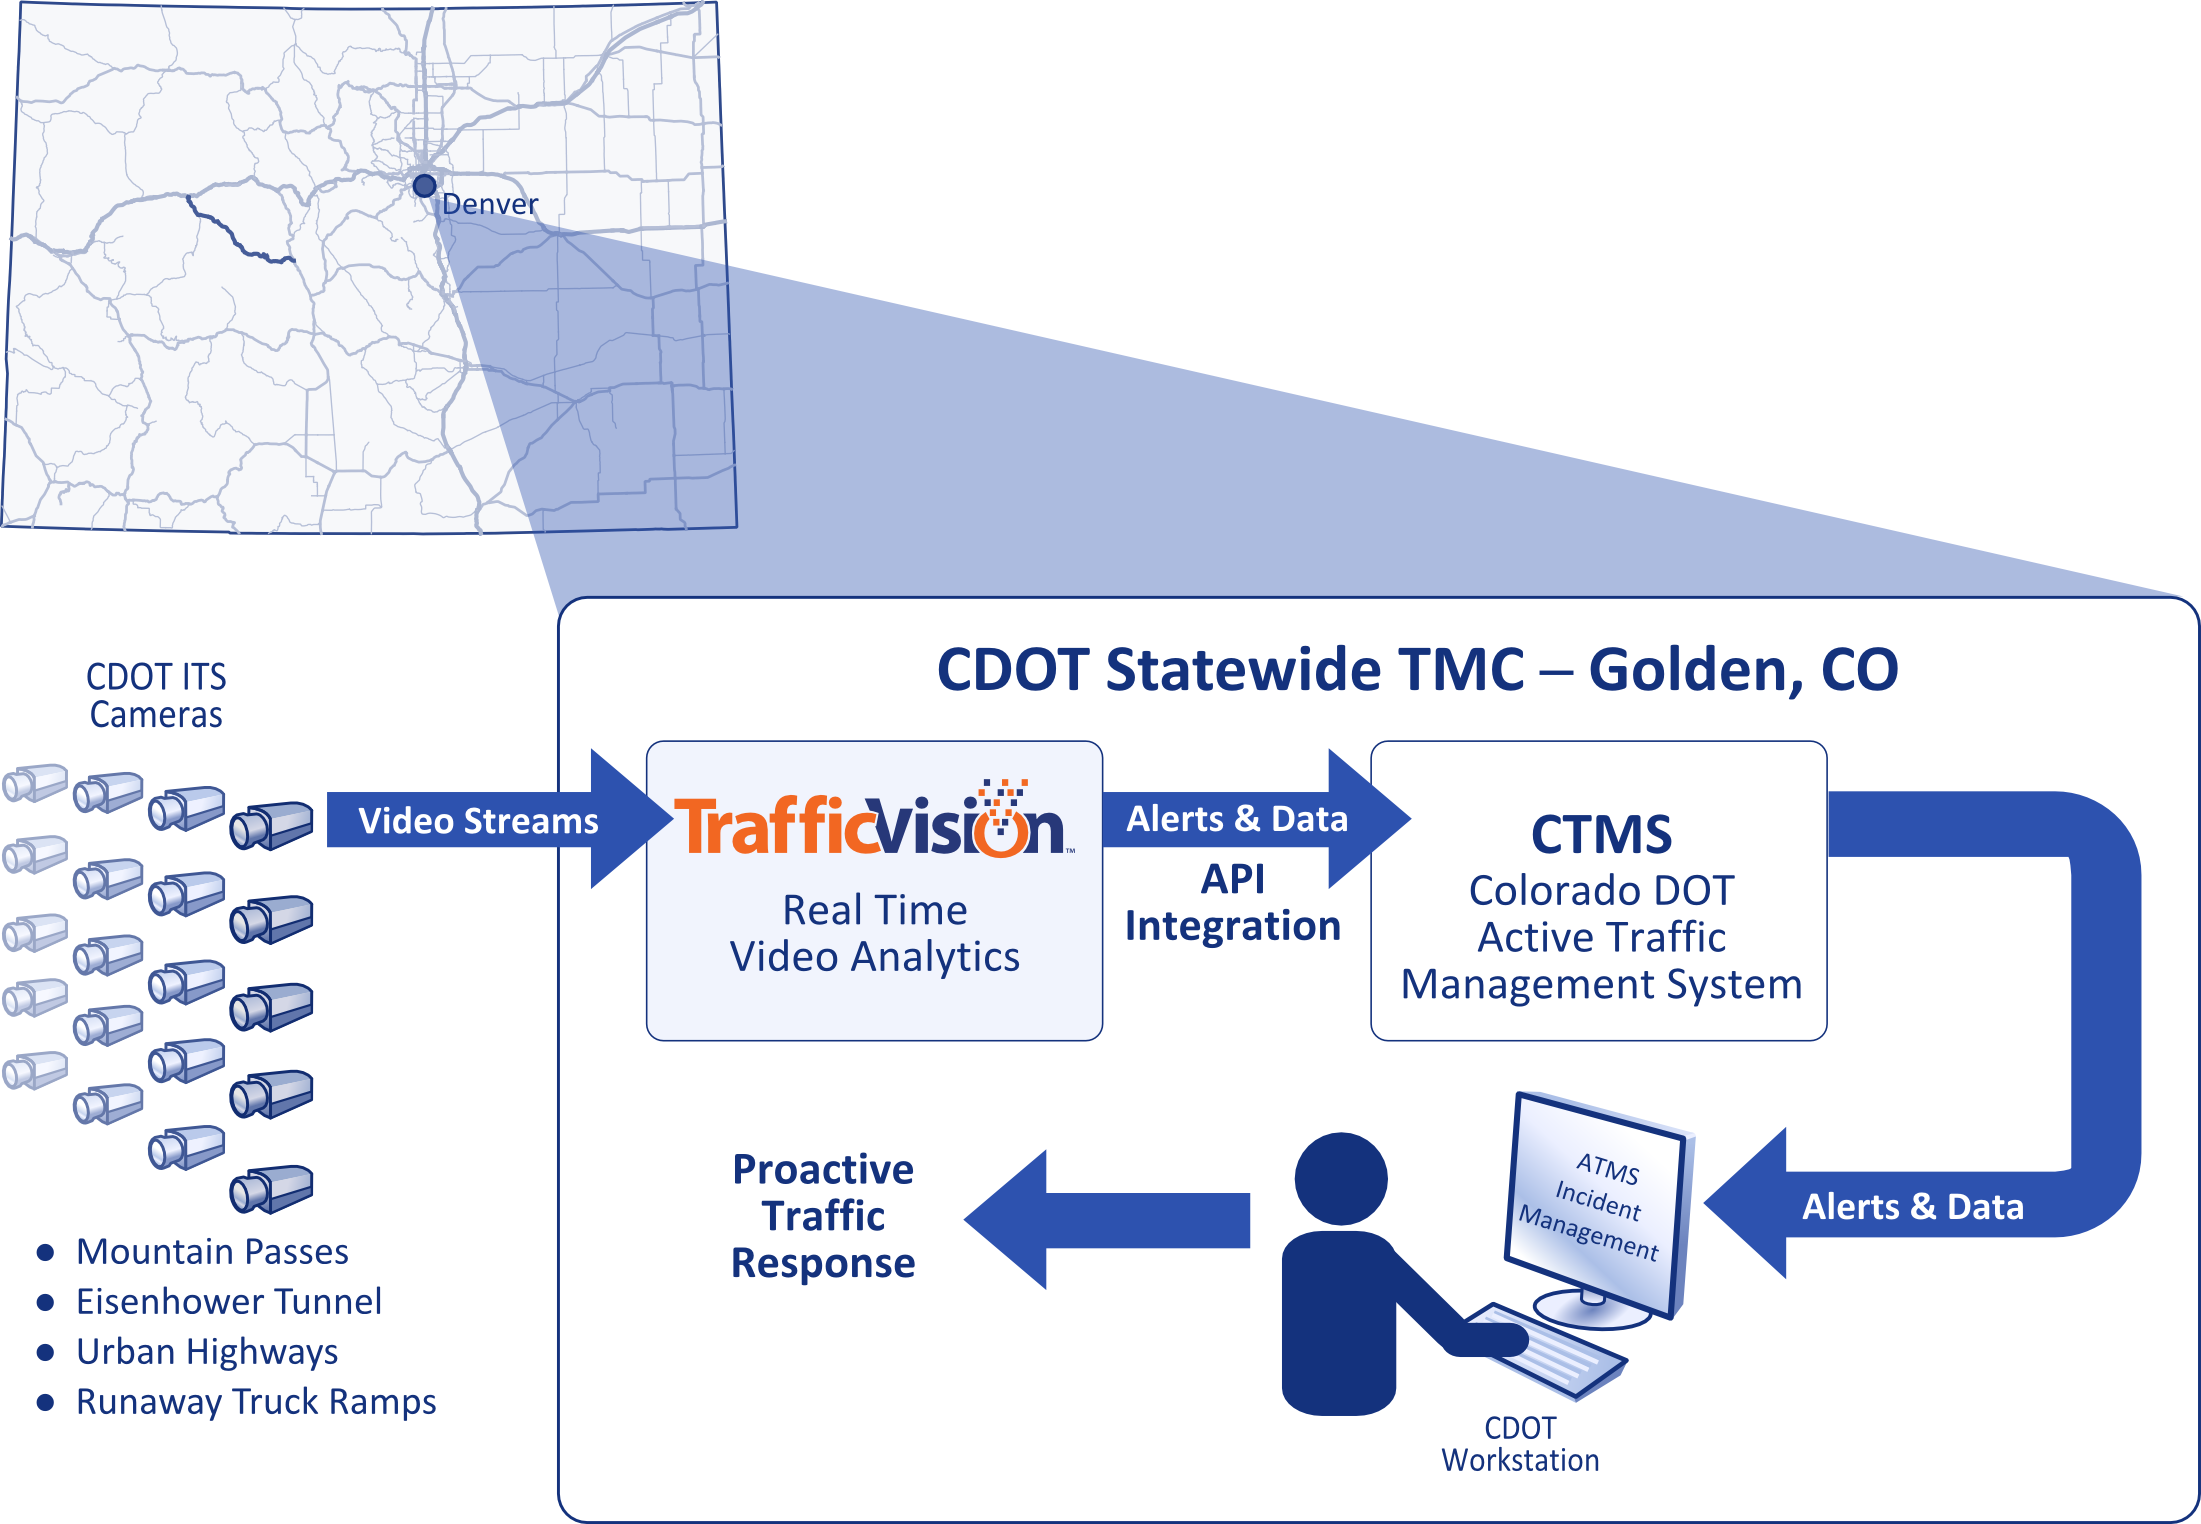 The CDOT system enhanced by an integration of TrafficVision™ video analytics for real-time incident detection and reporting to TMC operators through their advanced traffic management system (ATMS).